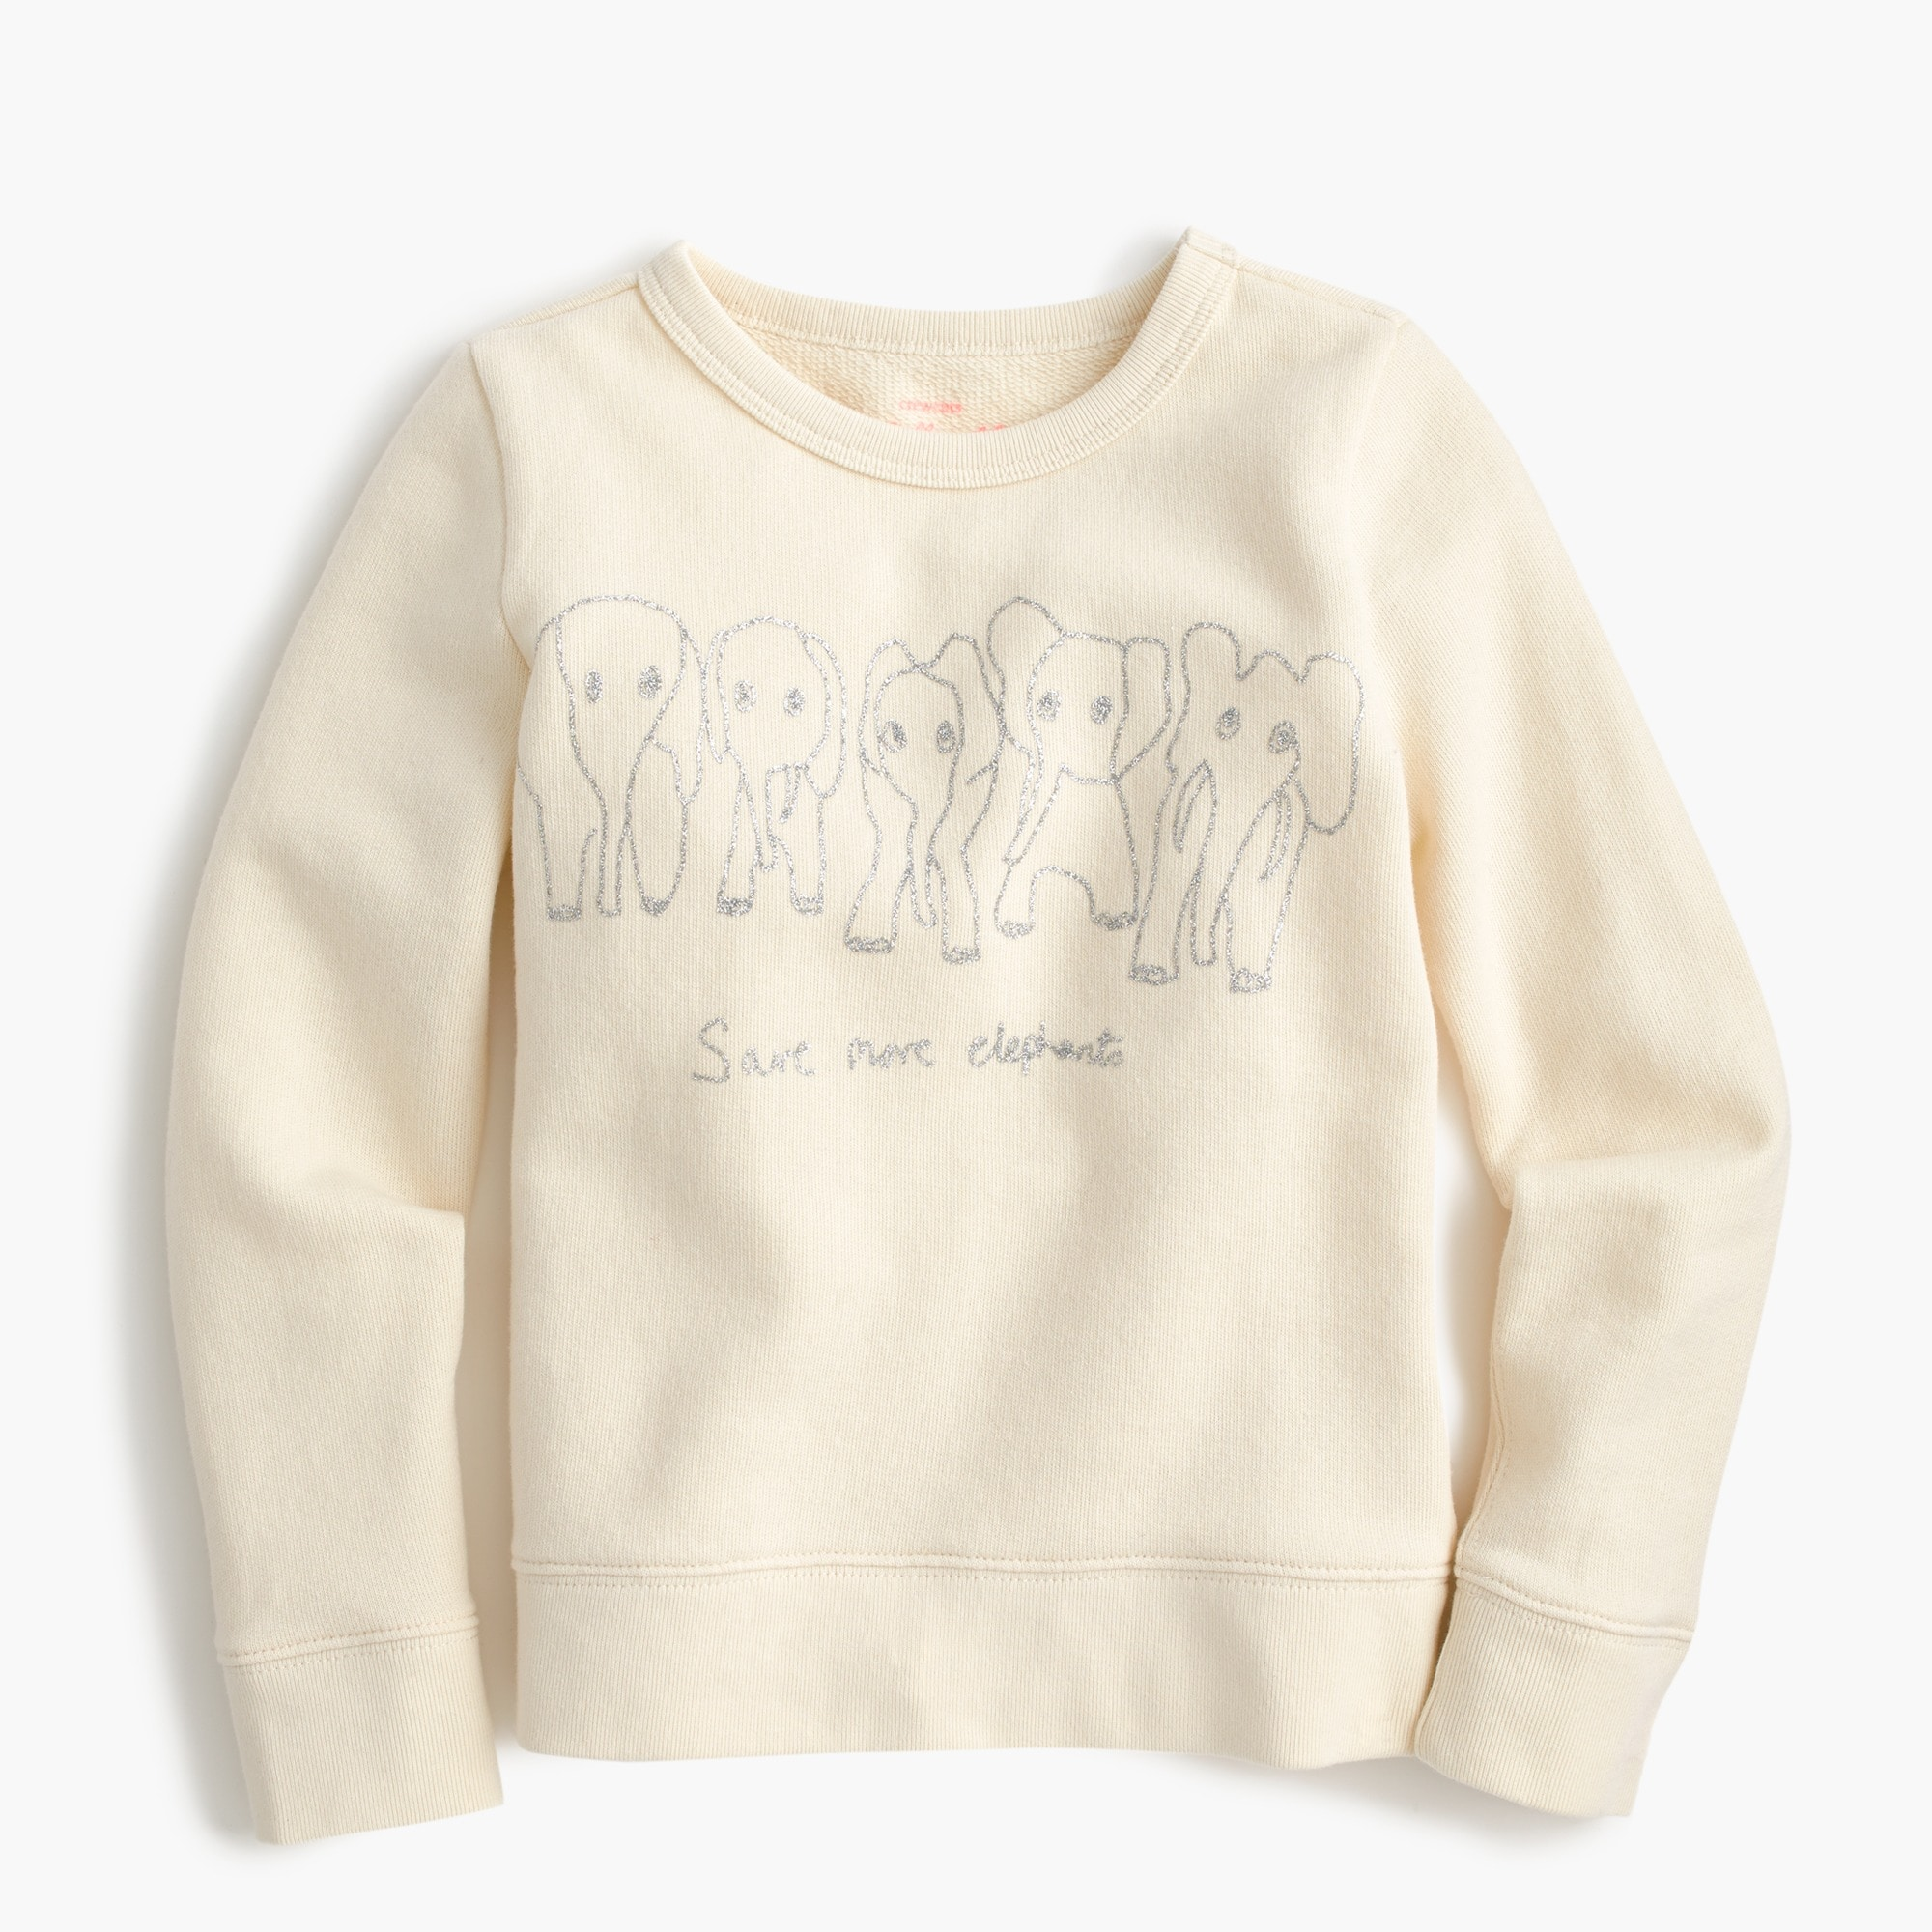 girls Girls' crewcuts for David Sheldrick Wildlife Trust Save More Elephants sweatshirt